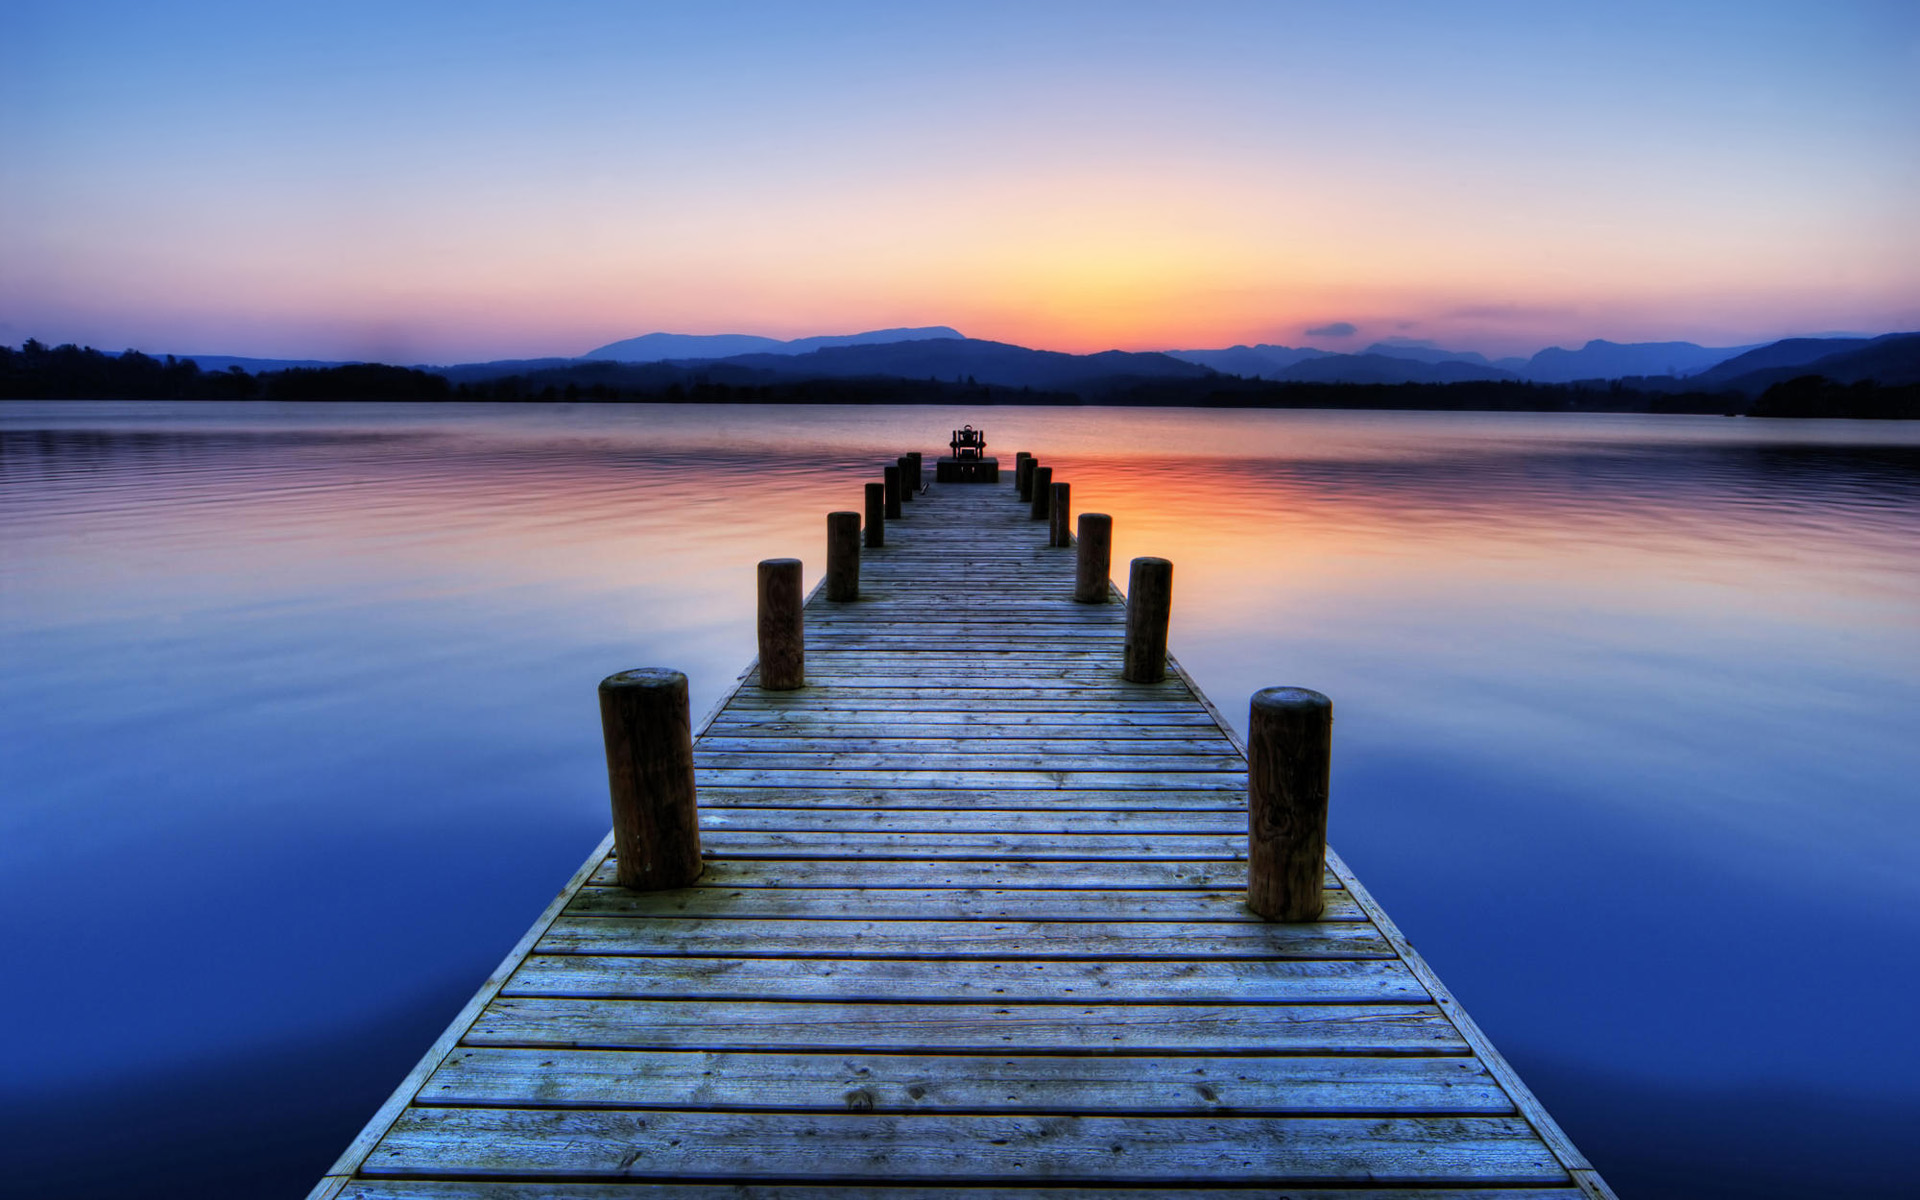 HQ Pier Wallpapers | File 2263.79Kb